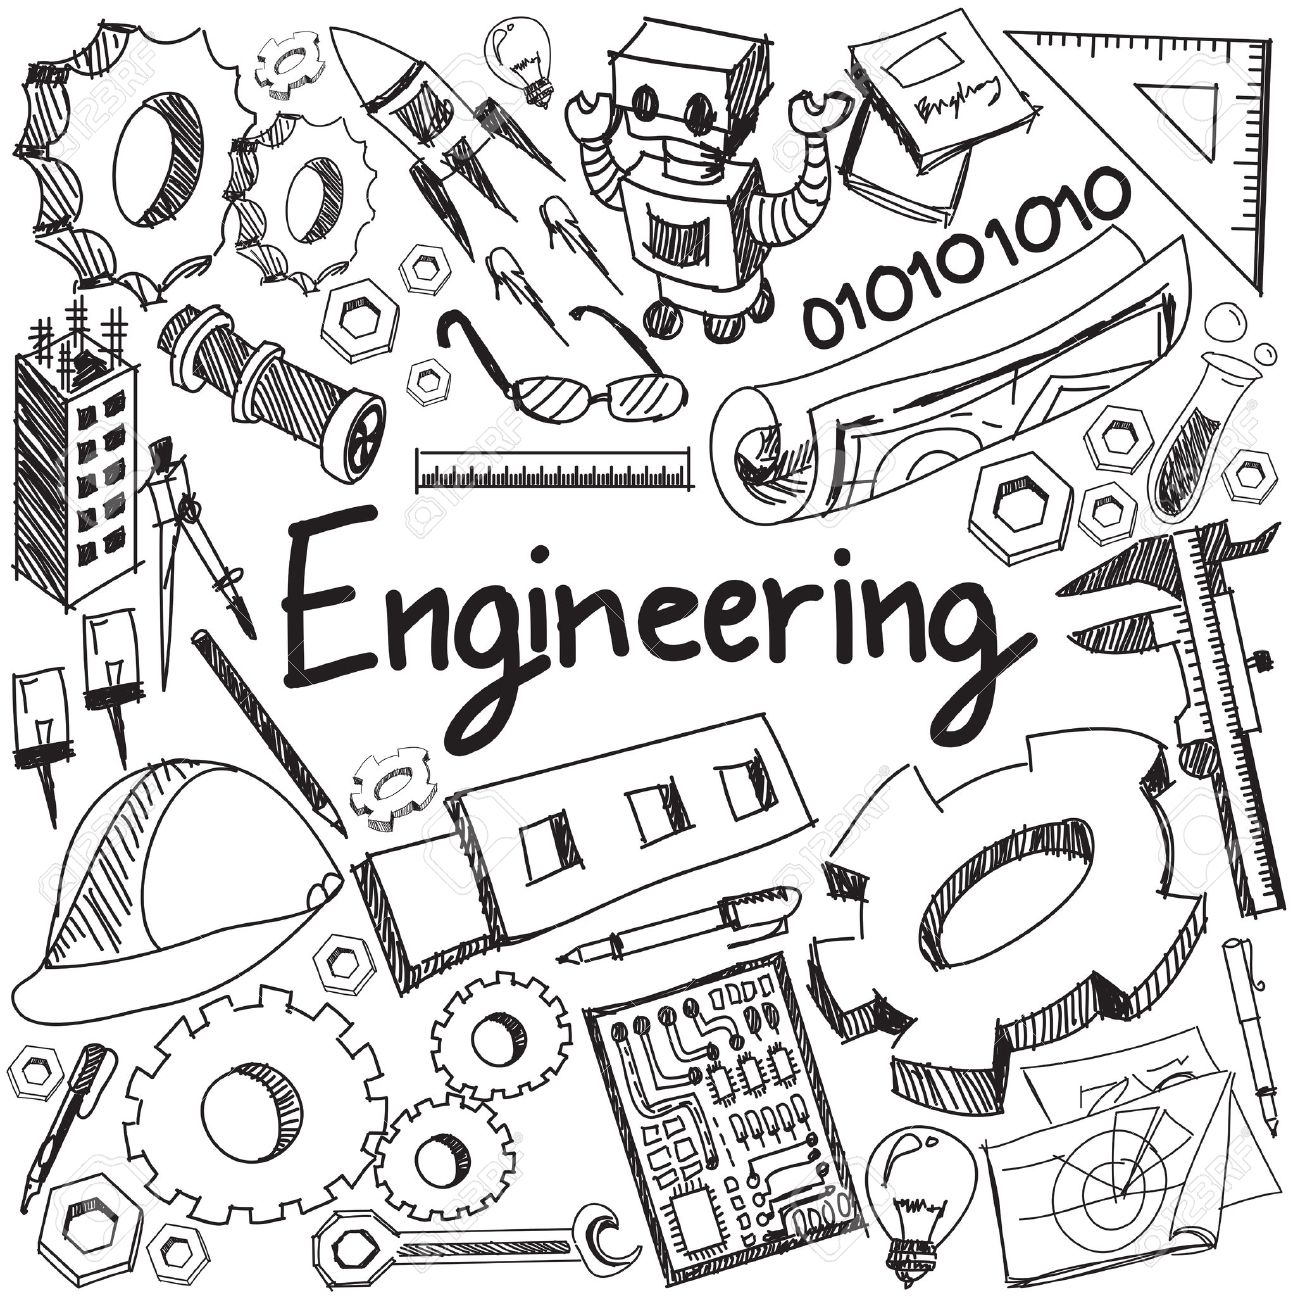 Mechanical, electrical, civil, chemical and other engineering education profession handwriting doodle icon tool sign and symbol in white isolated background paper used for subject or presentation title with header text, create by vector - 52658969